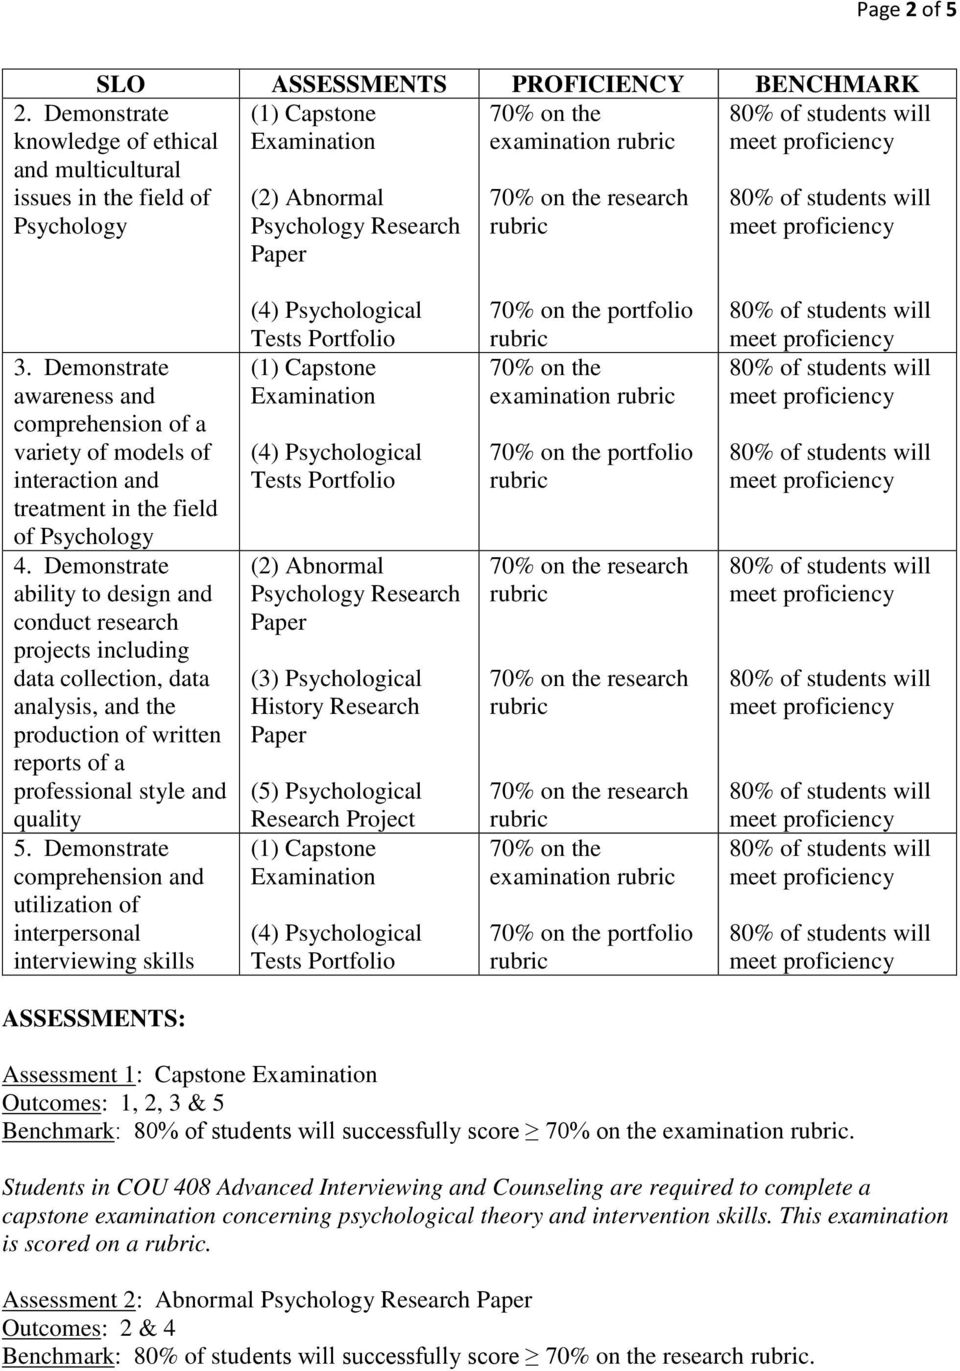 Demonstrate awareness and comprehension of a variety of models of interaction and treatment in the field of Psychology 4.